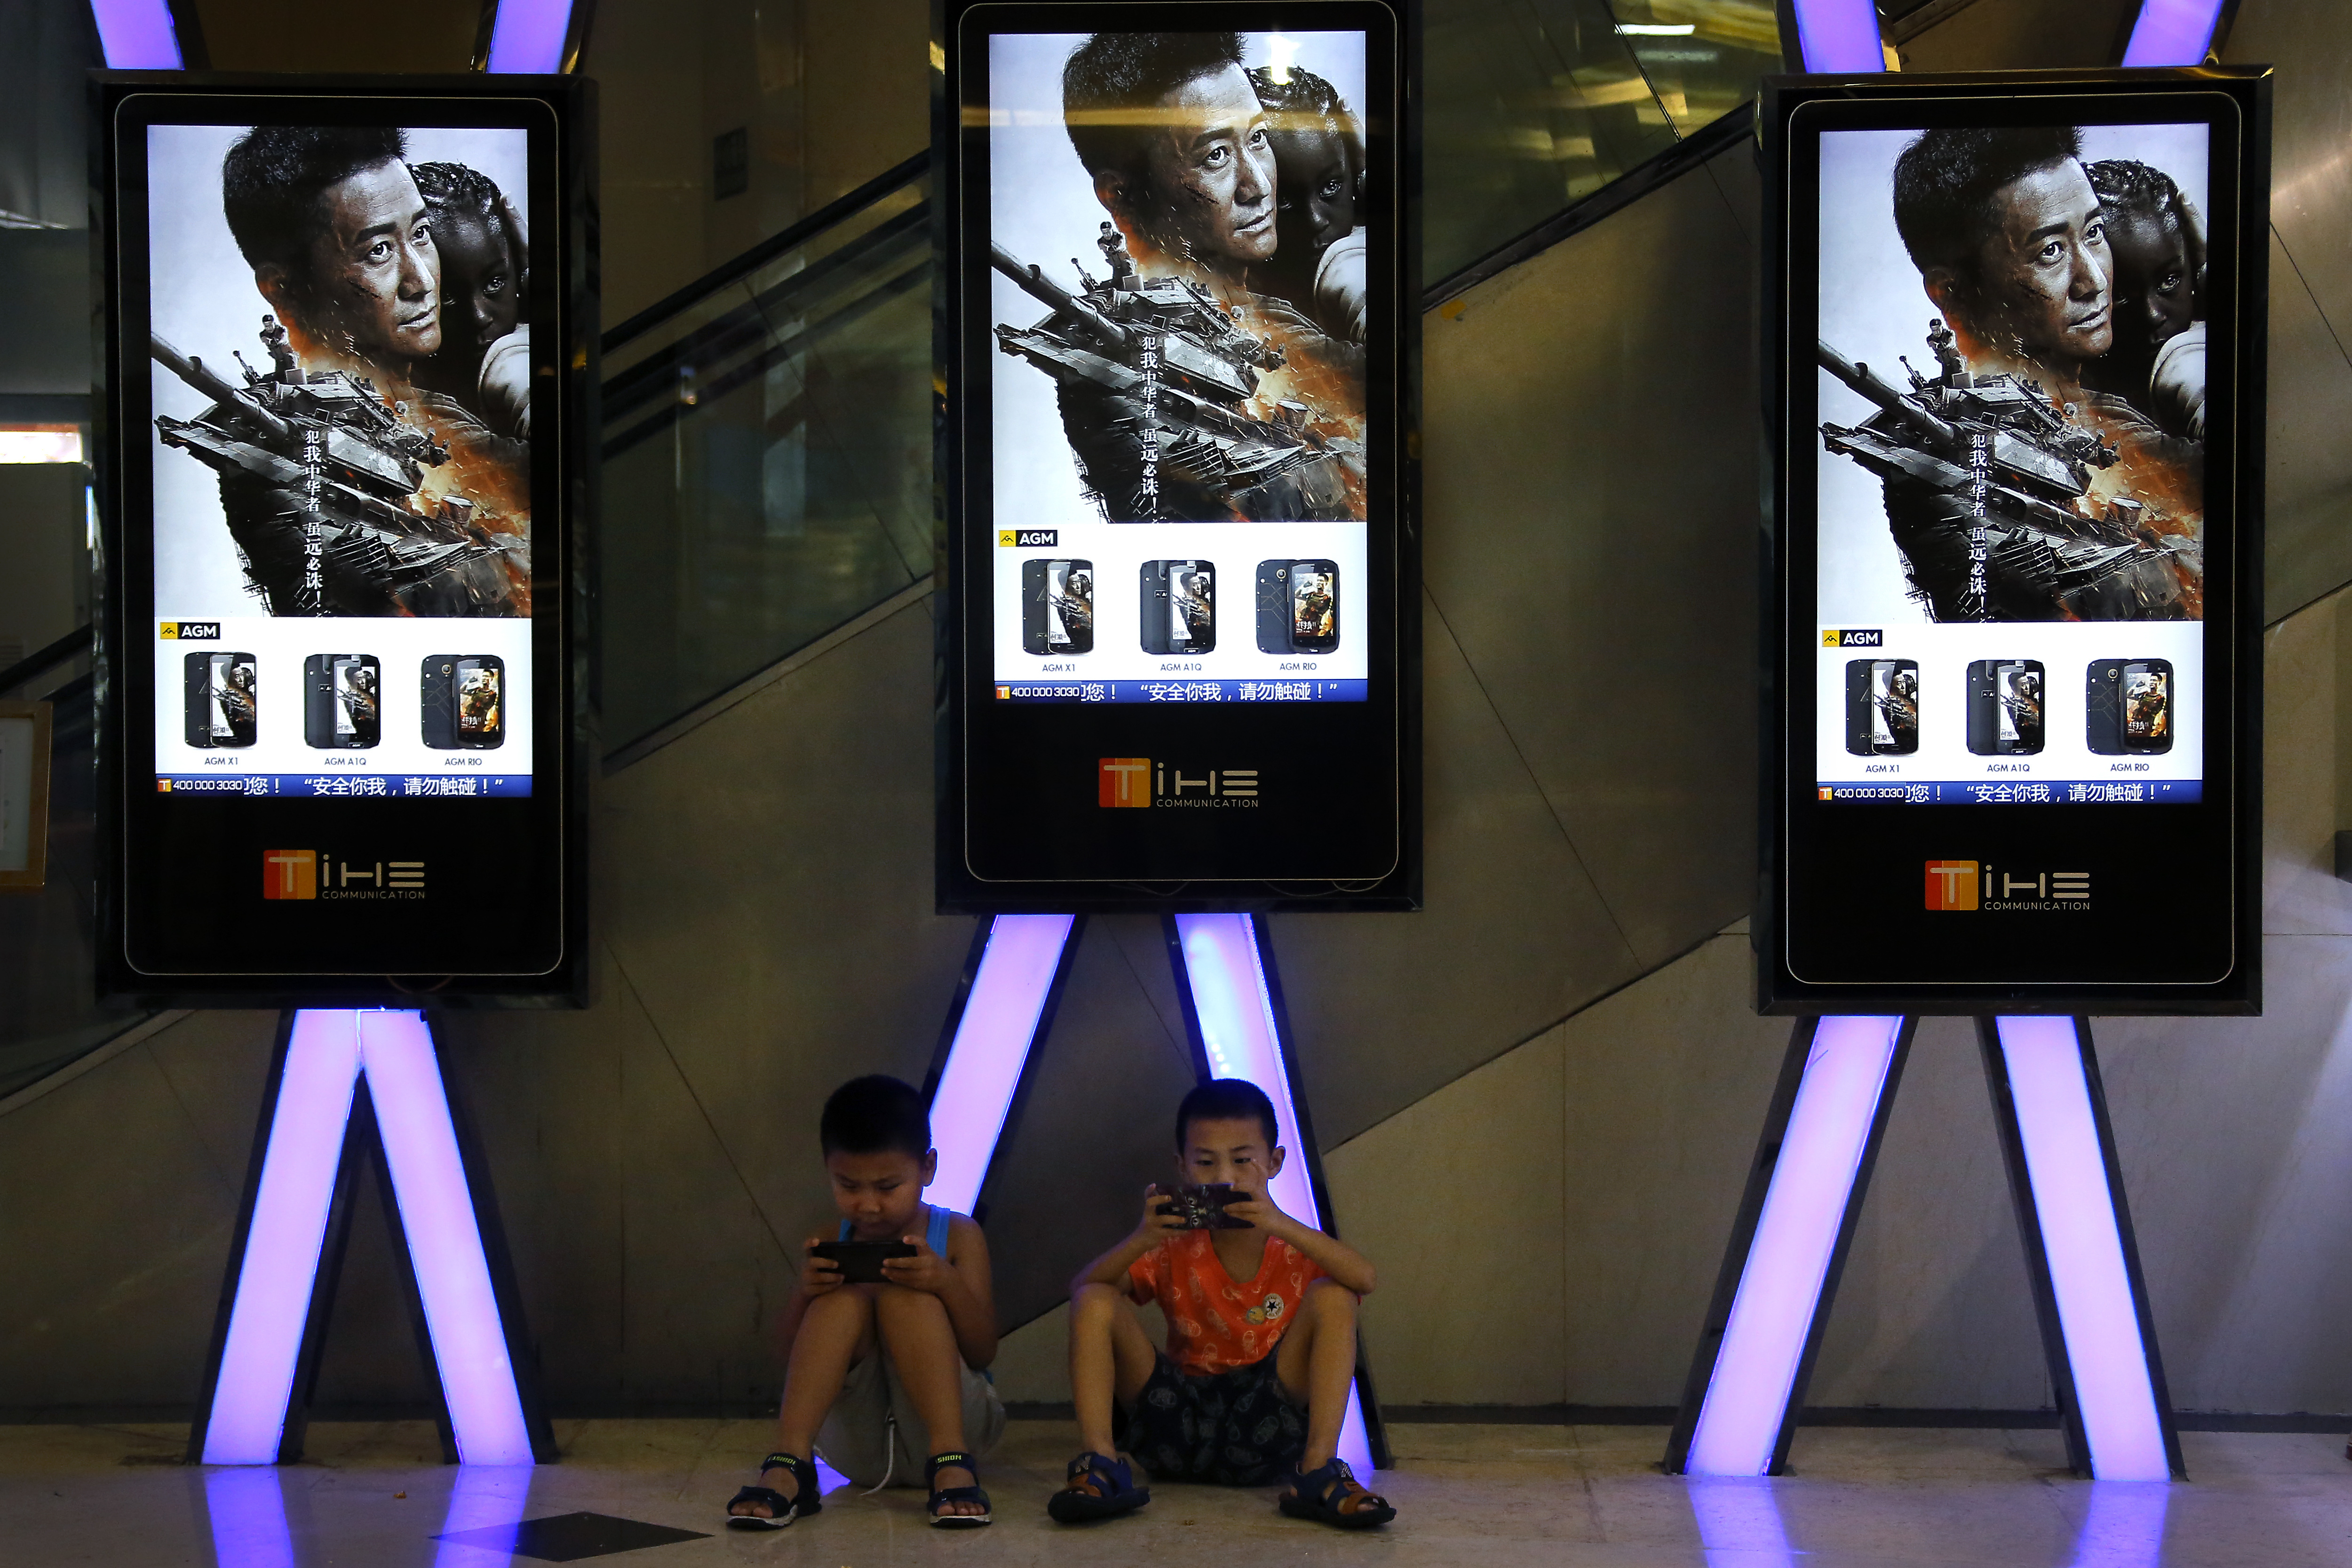 """Children use smartphones near monitors displaying a Chinese action movie """"Wolf Warrior 2"""" at a cinema in Beijing, Aug. 10, 2017. The patriotic film reportedly inspired by evacuations of Chinese civilians in Libya and Yemen is becoming one of China's ..."""